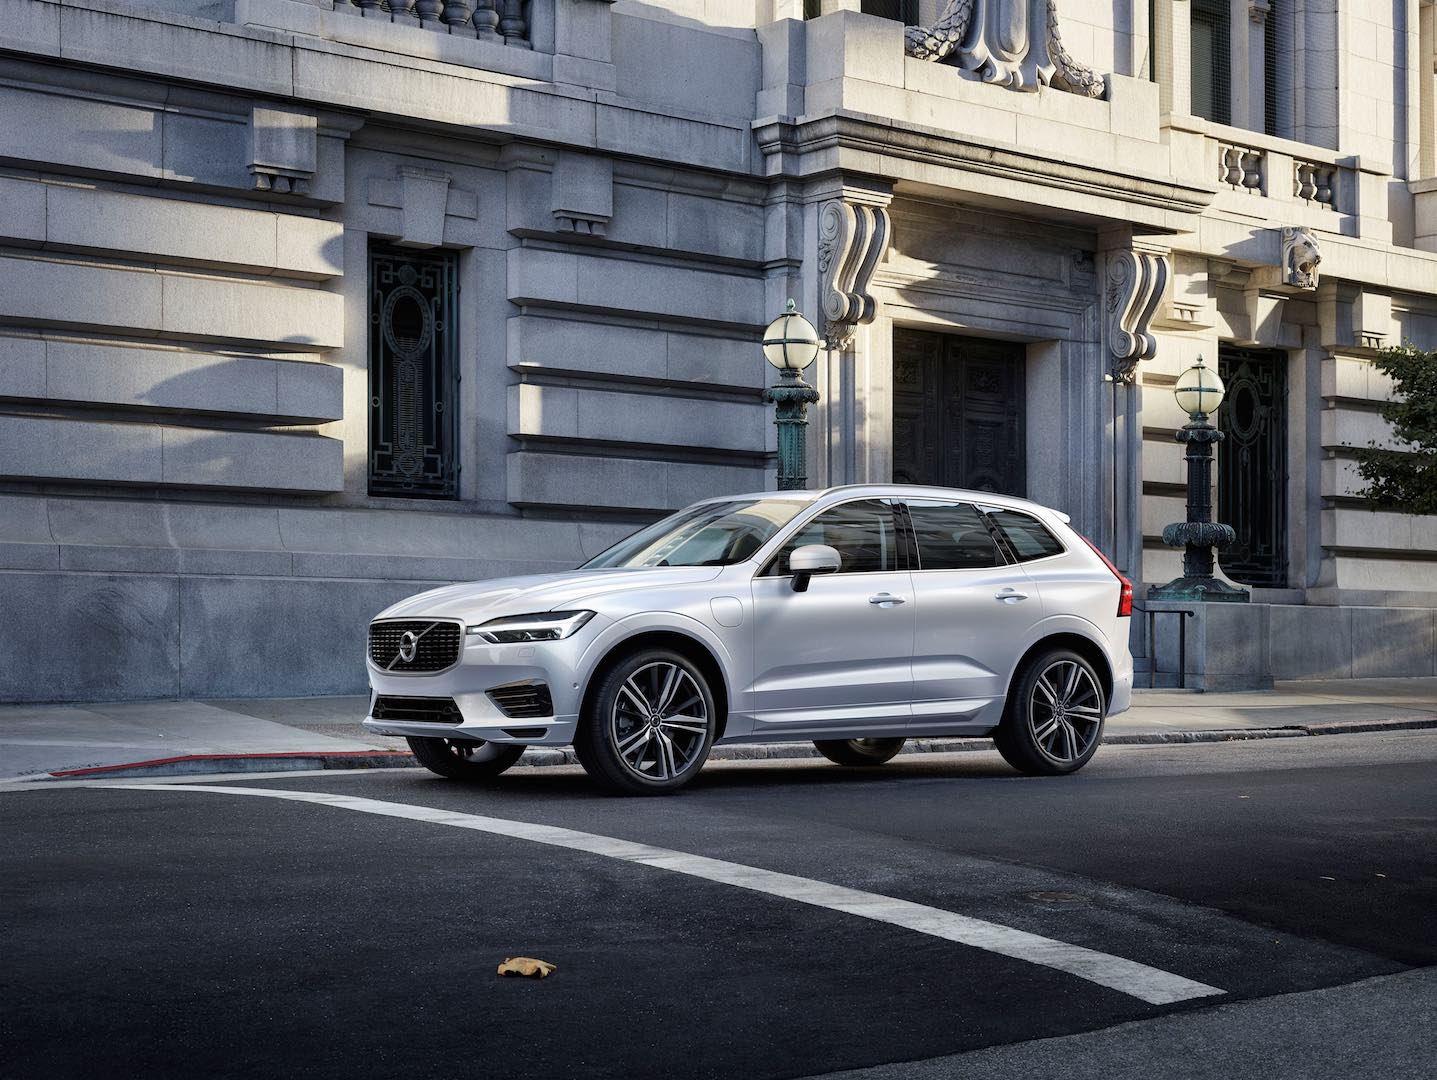 Driving Range: The new Volvo XC60